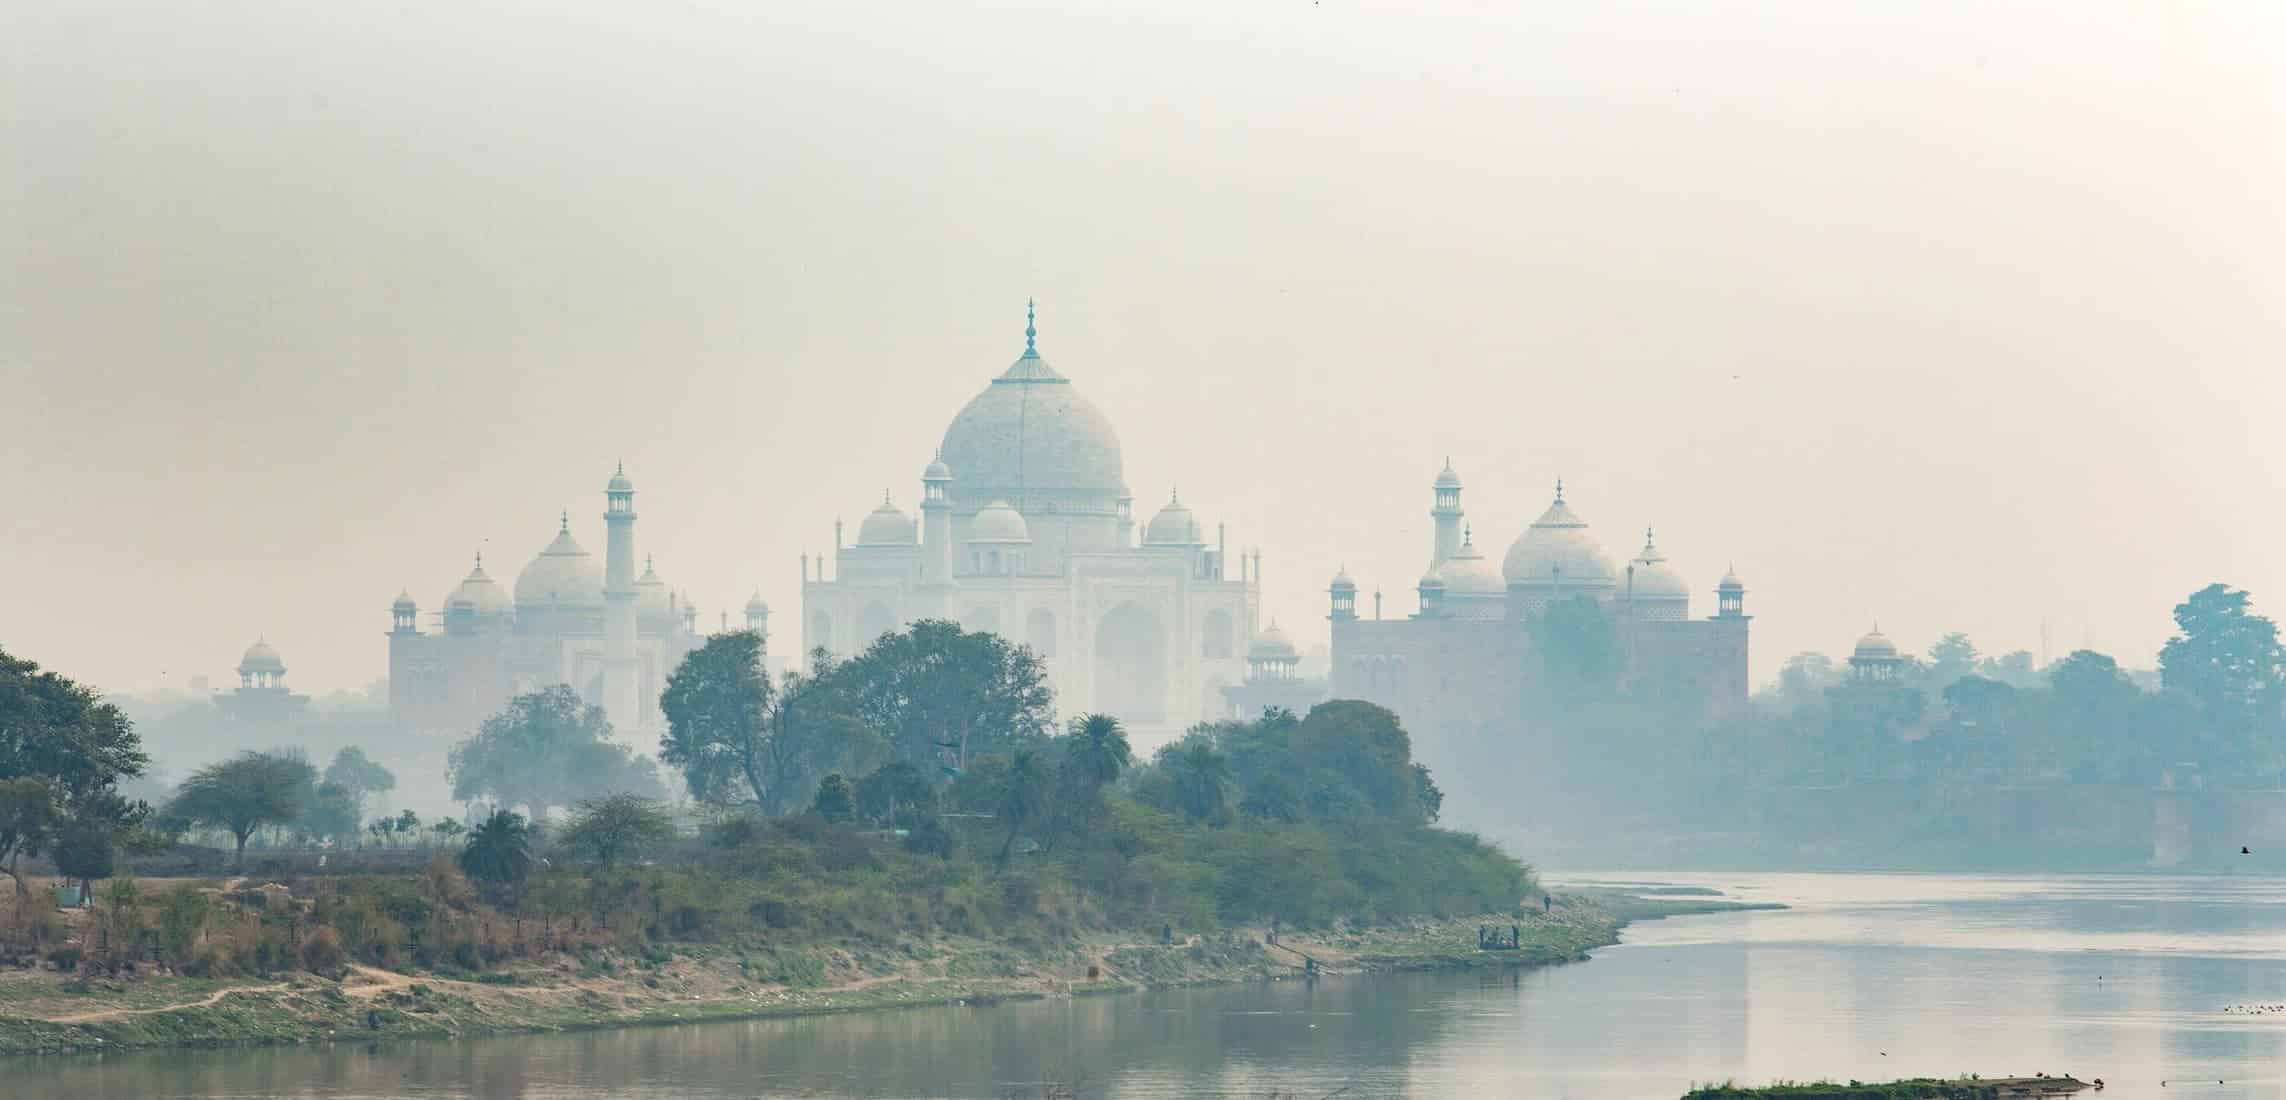 Agra, Taj Mahal, Landmark, architecture, INDIA, indian, river, february